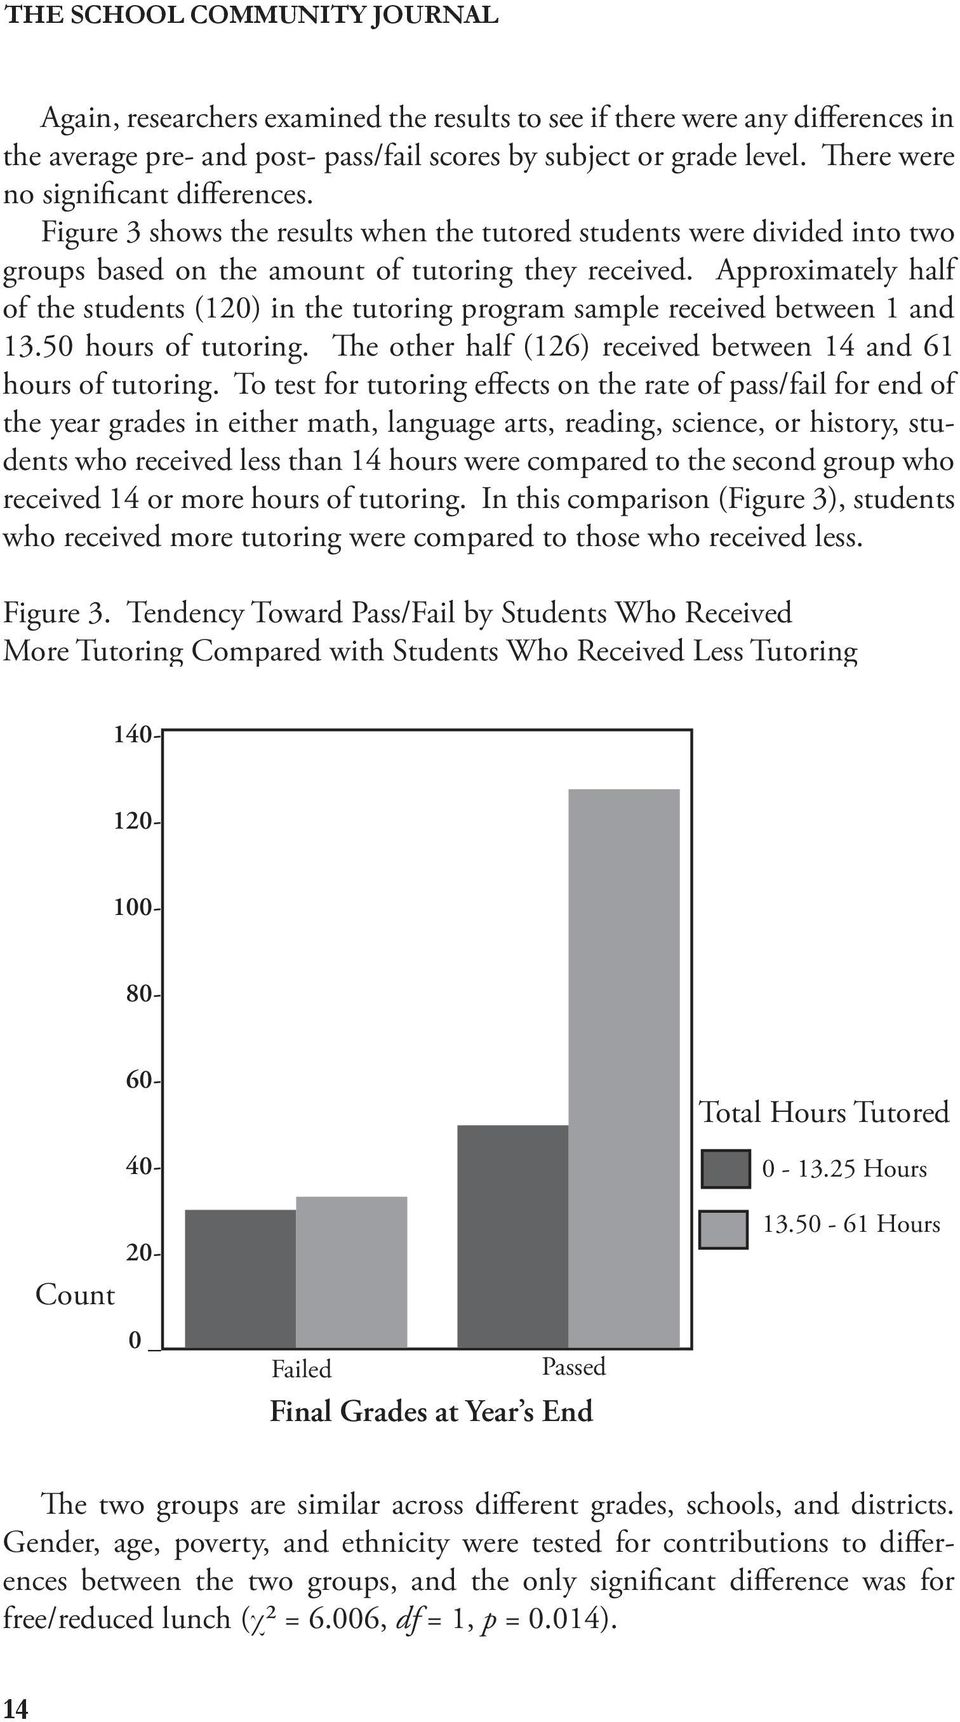 Approximately half of the students (120) in the tutoring program sample received between 1 and 13.50 hours of tutoring. e other half (126) received between 14 and 61 hours of tutoring.